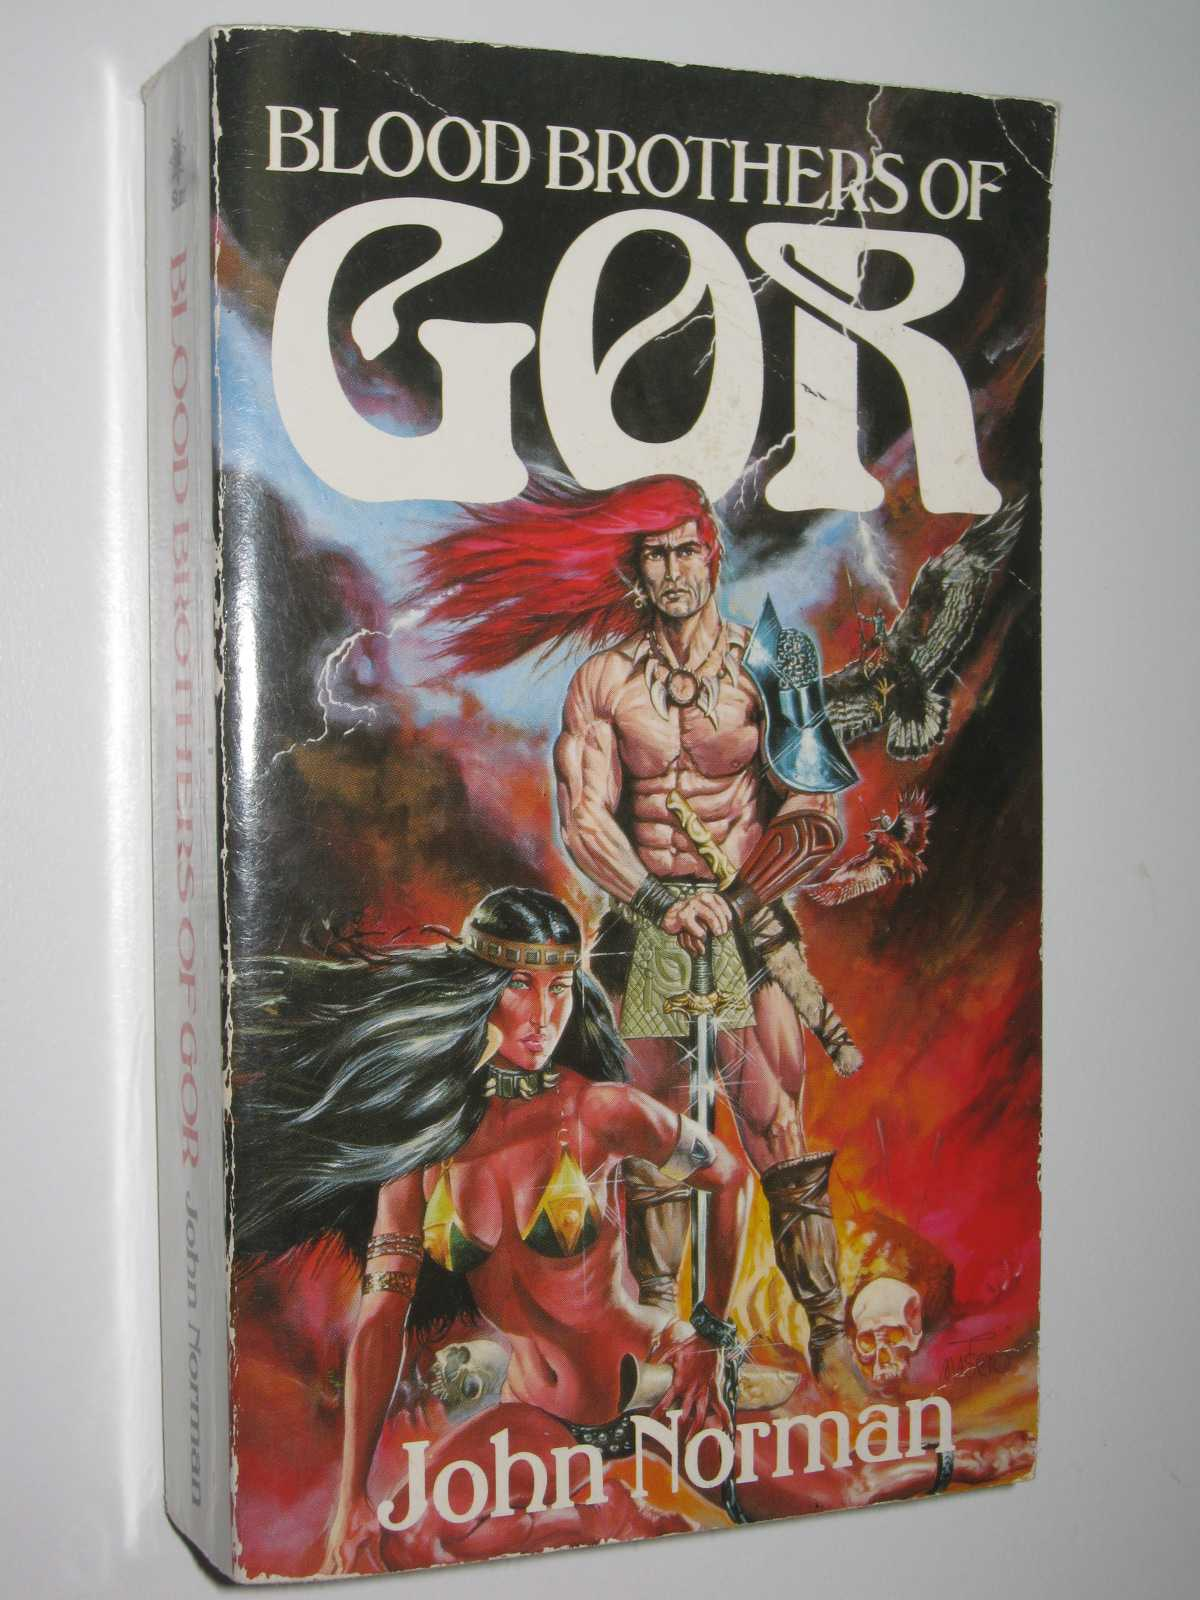 Blood Brothers of Gor - Chronicles of Counter-Earth #18, Norman, John